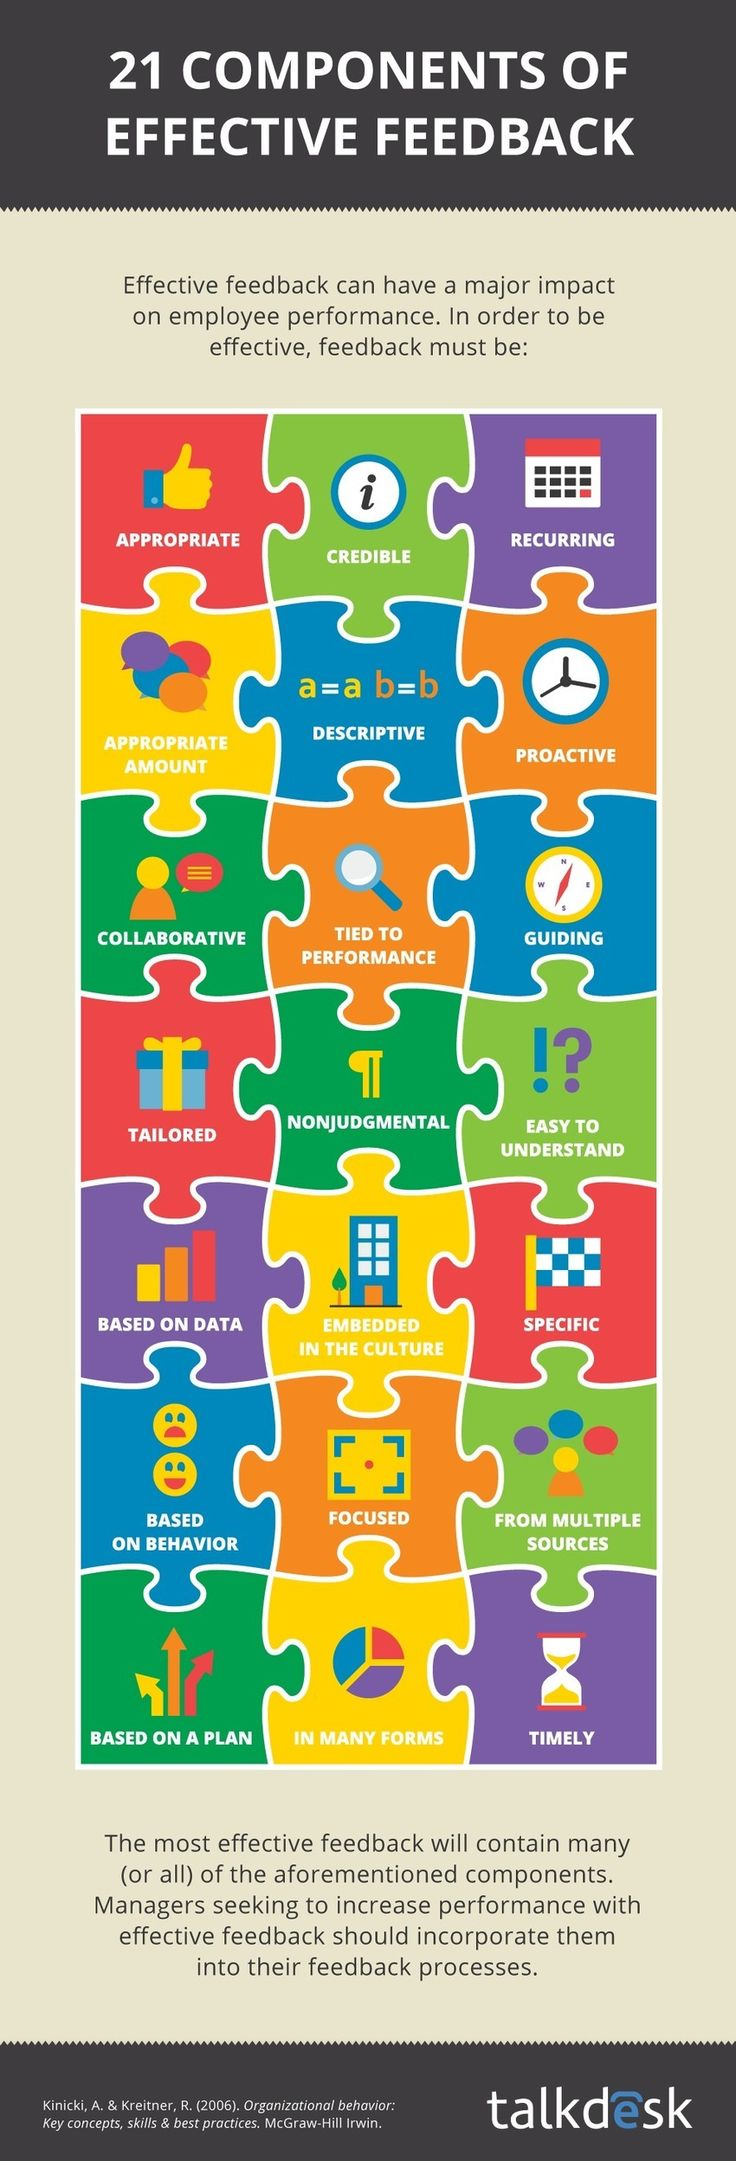 E learning poster designs - 21 Components Of Effective Feedback Infographic E Learning Infographics